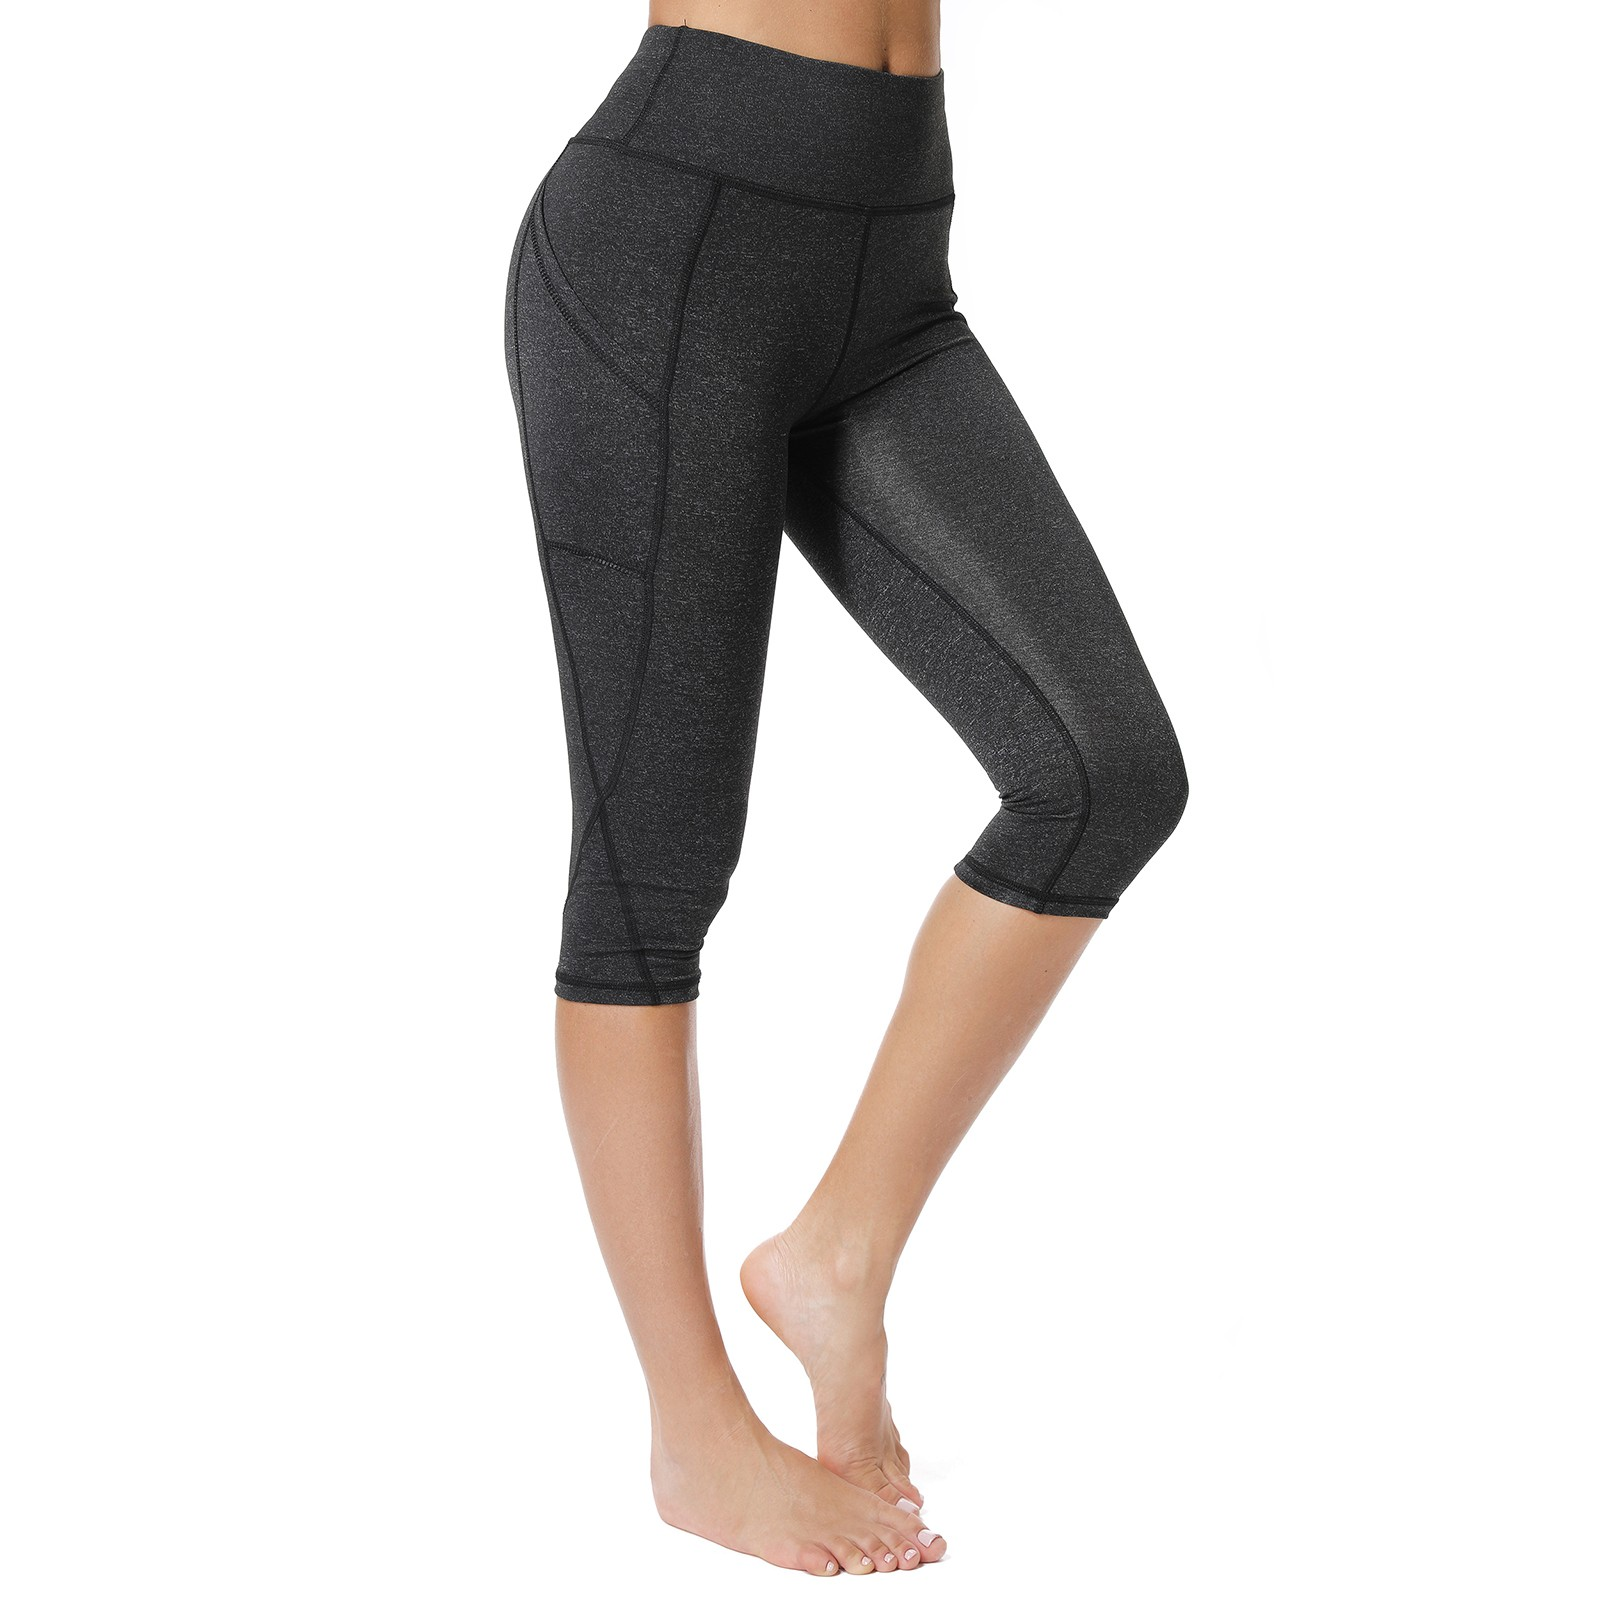 STELLE Womens Workout Shorts//Biker Shorts for Running Yoga High Waisted 8 Essential with Side Pockets